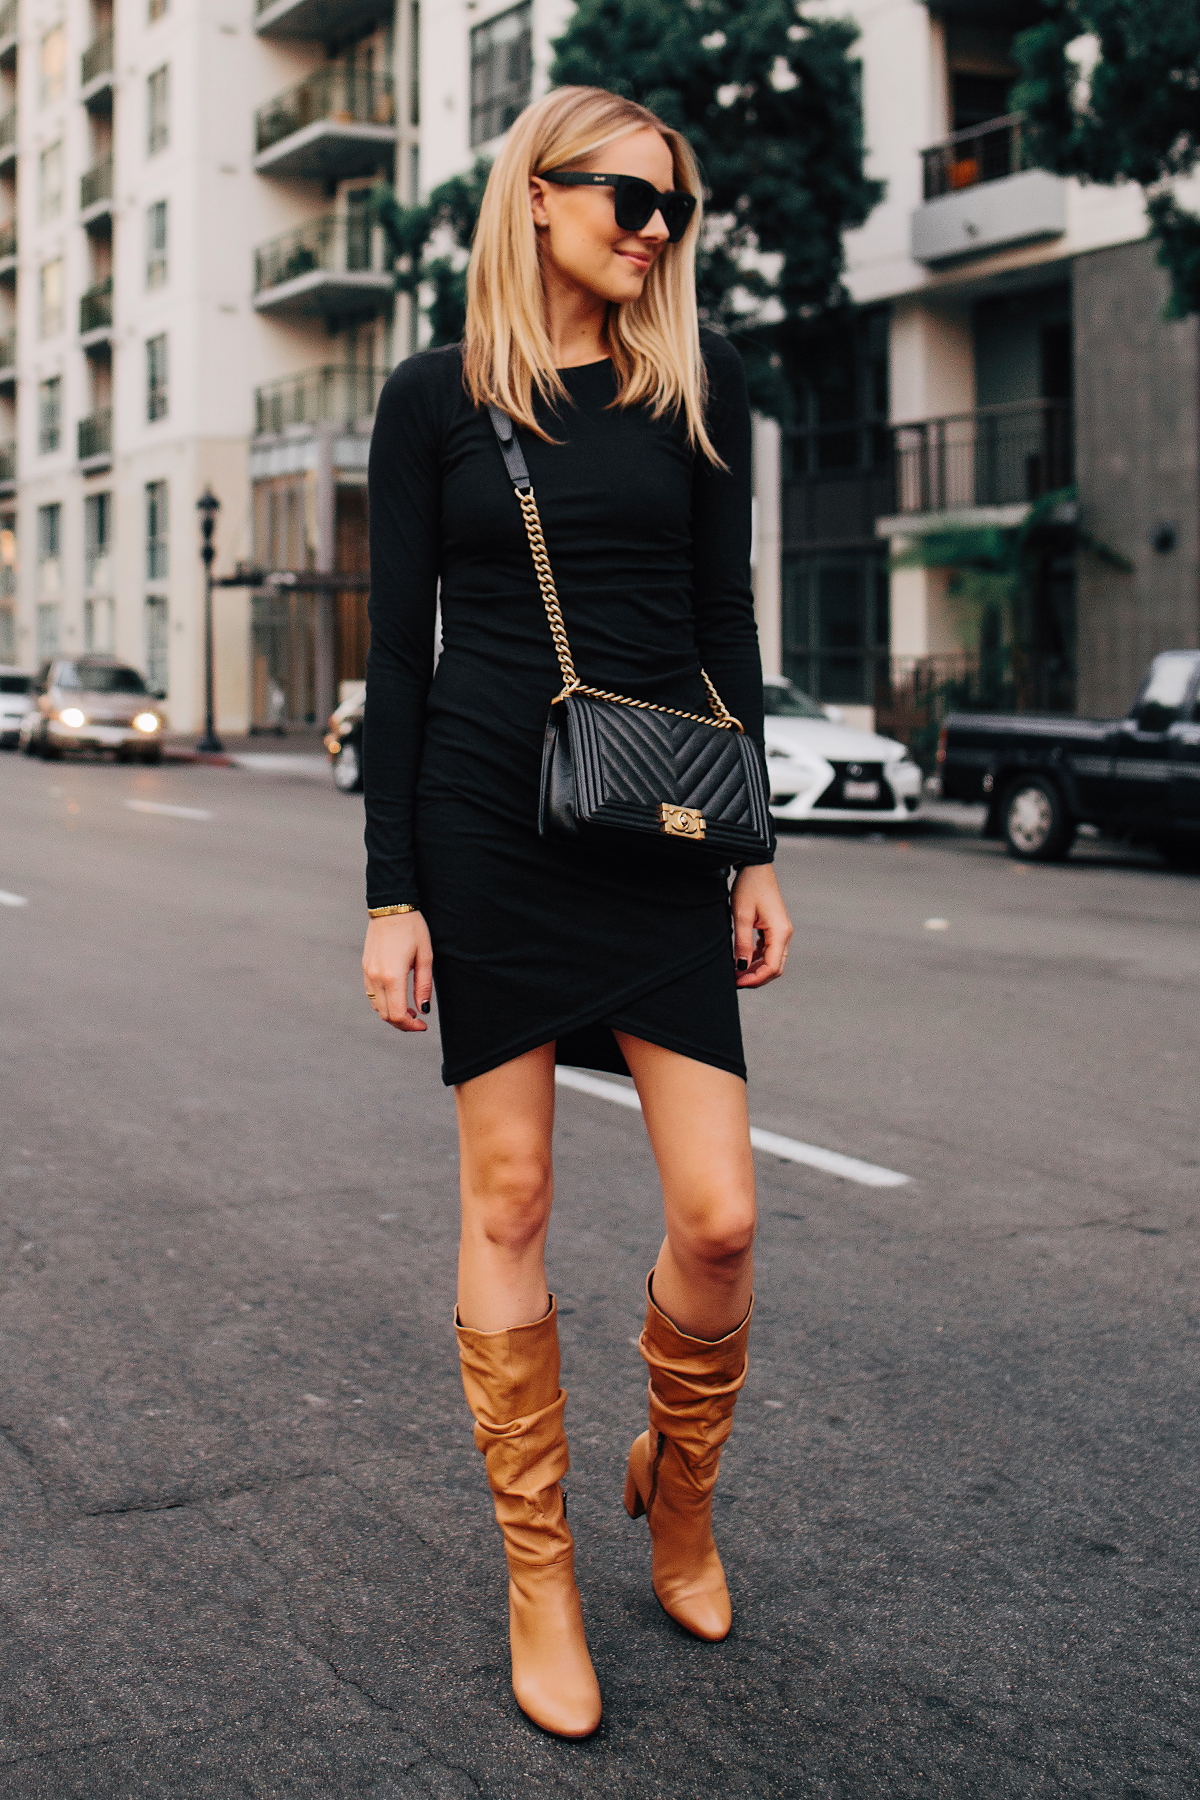 Blonde Woman Wearing Black Long Sleeve Bodycon Dress Ecco Tan Leather Heeled Boots Chanel Black Boy Bag Fashion Jackson San Diego Fashion Blogger Street Style